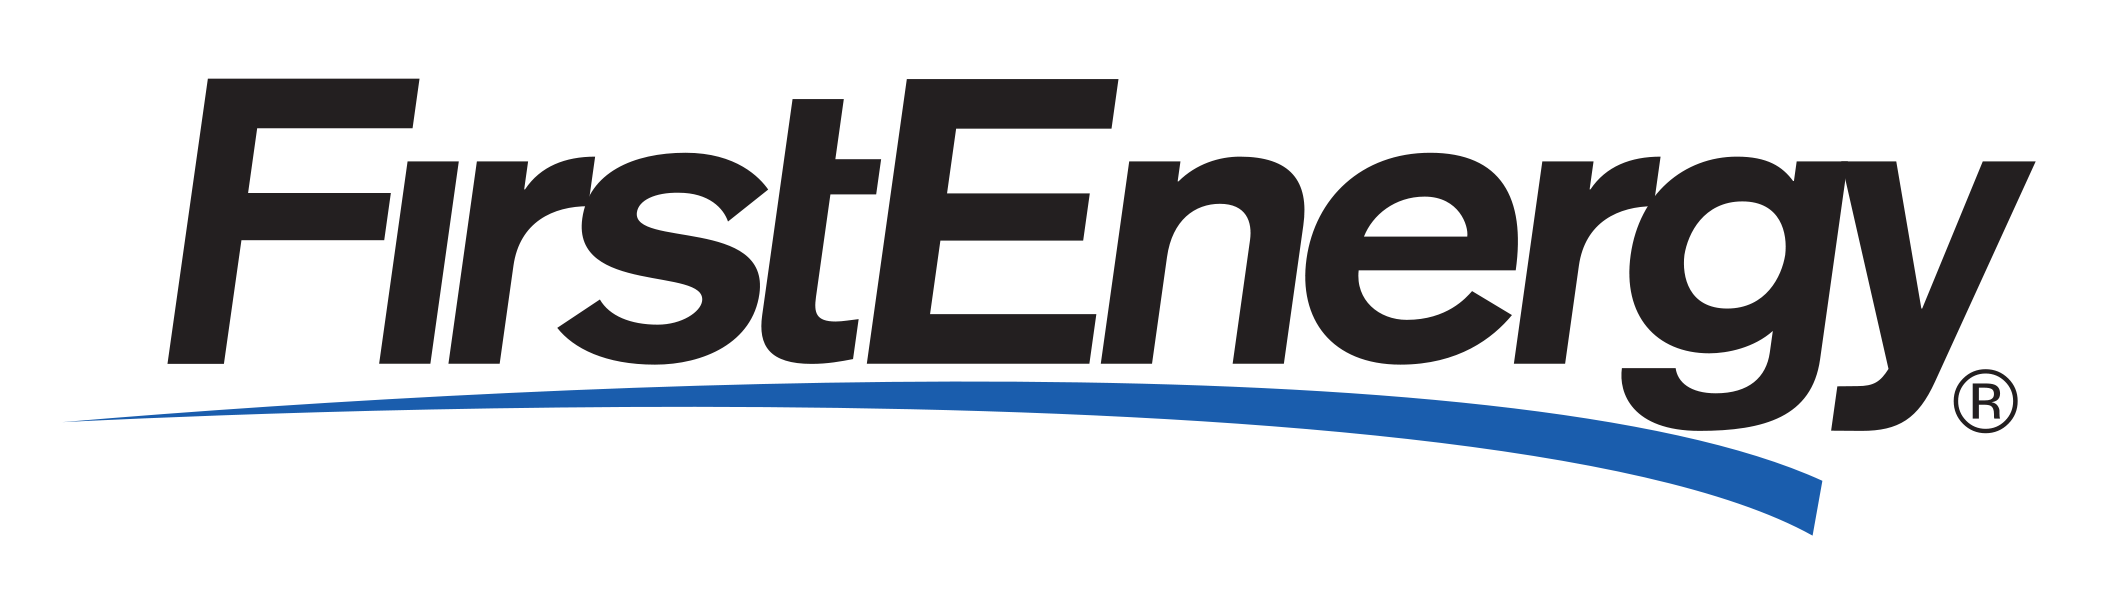 Download FirstEnergy Logo PNG Image for Free.